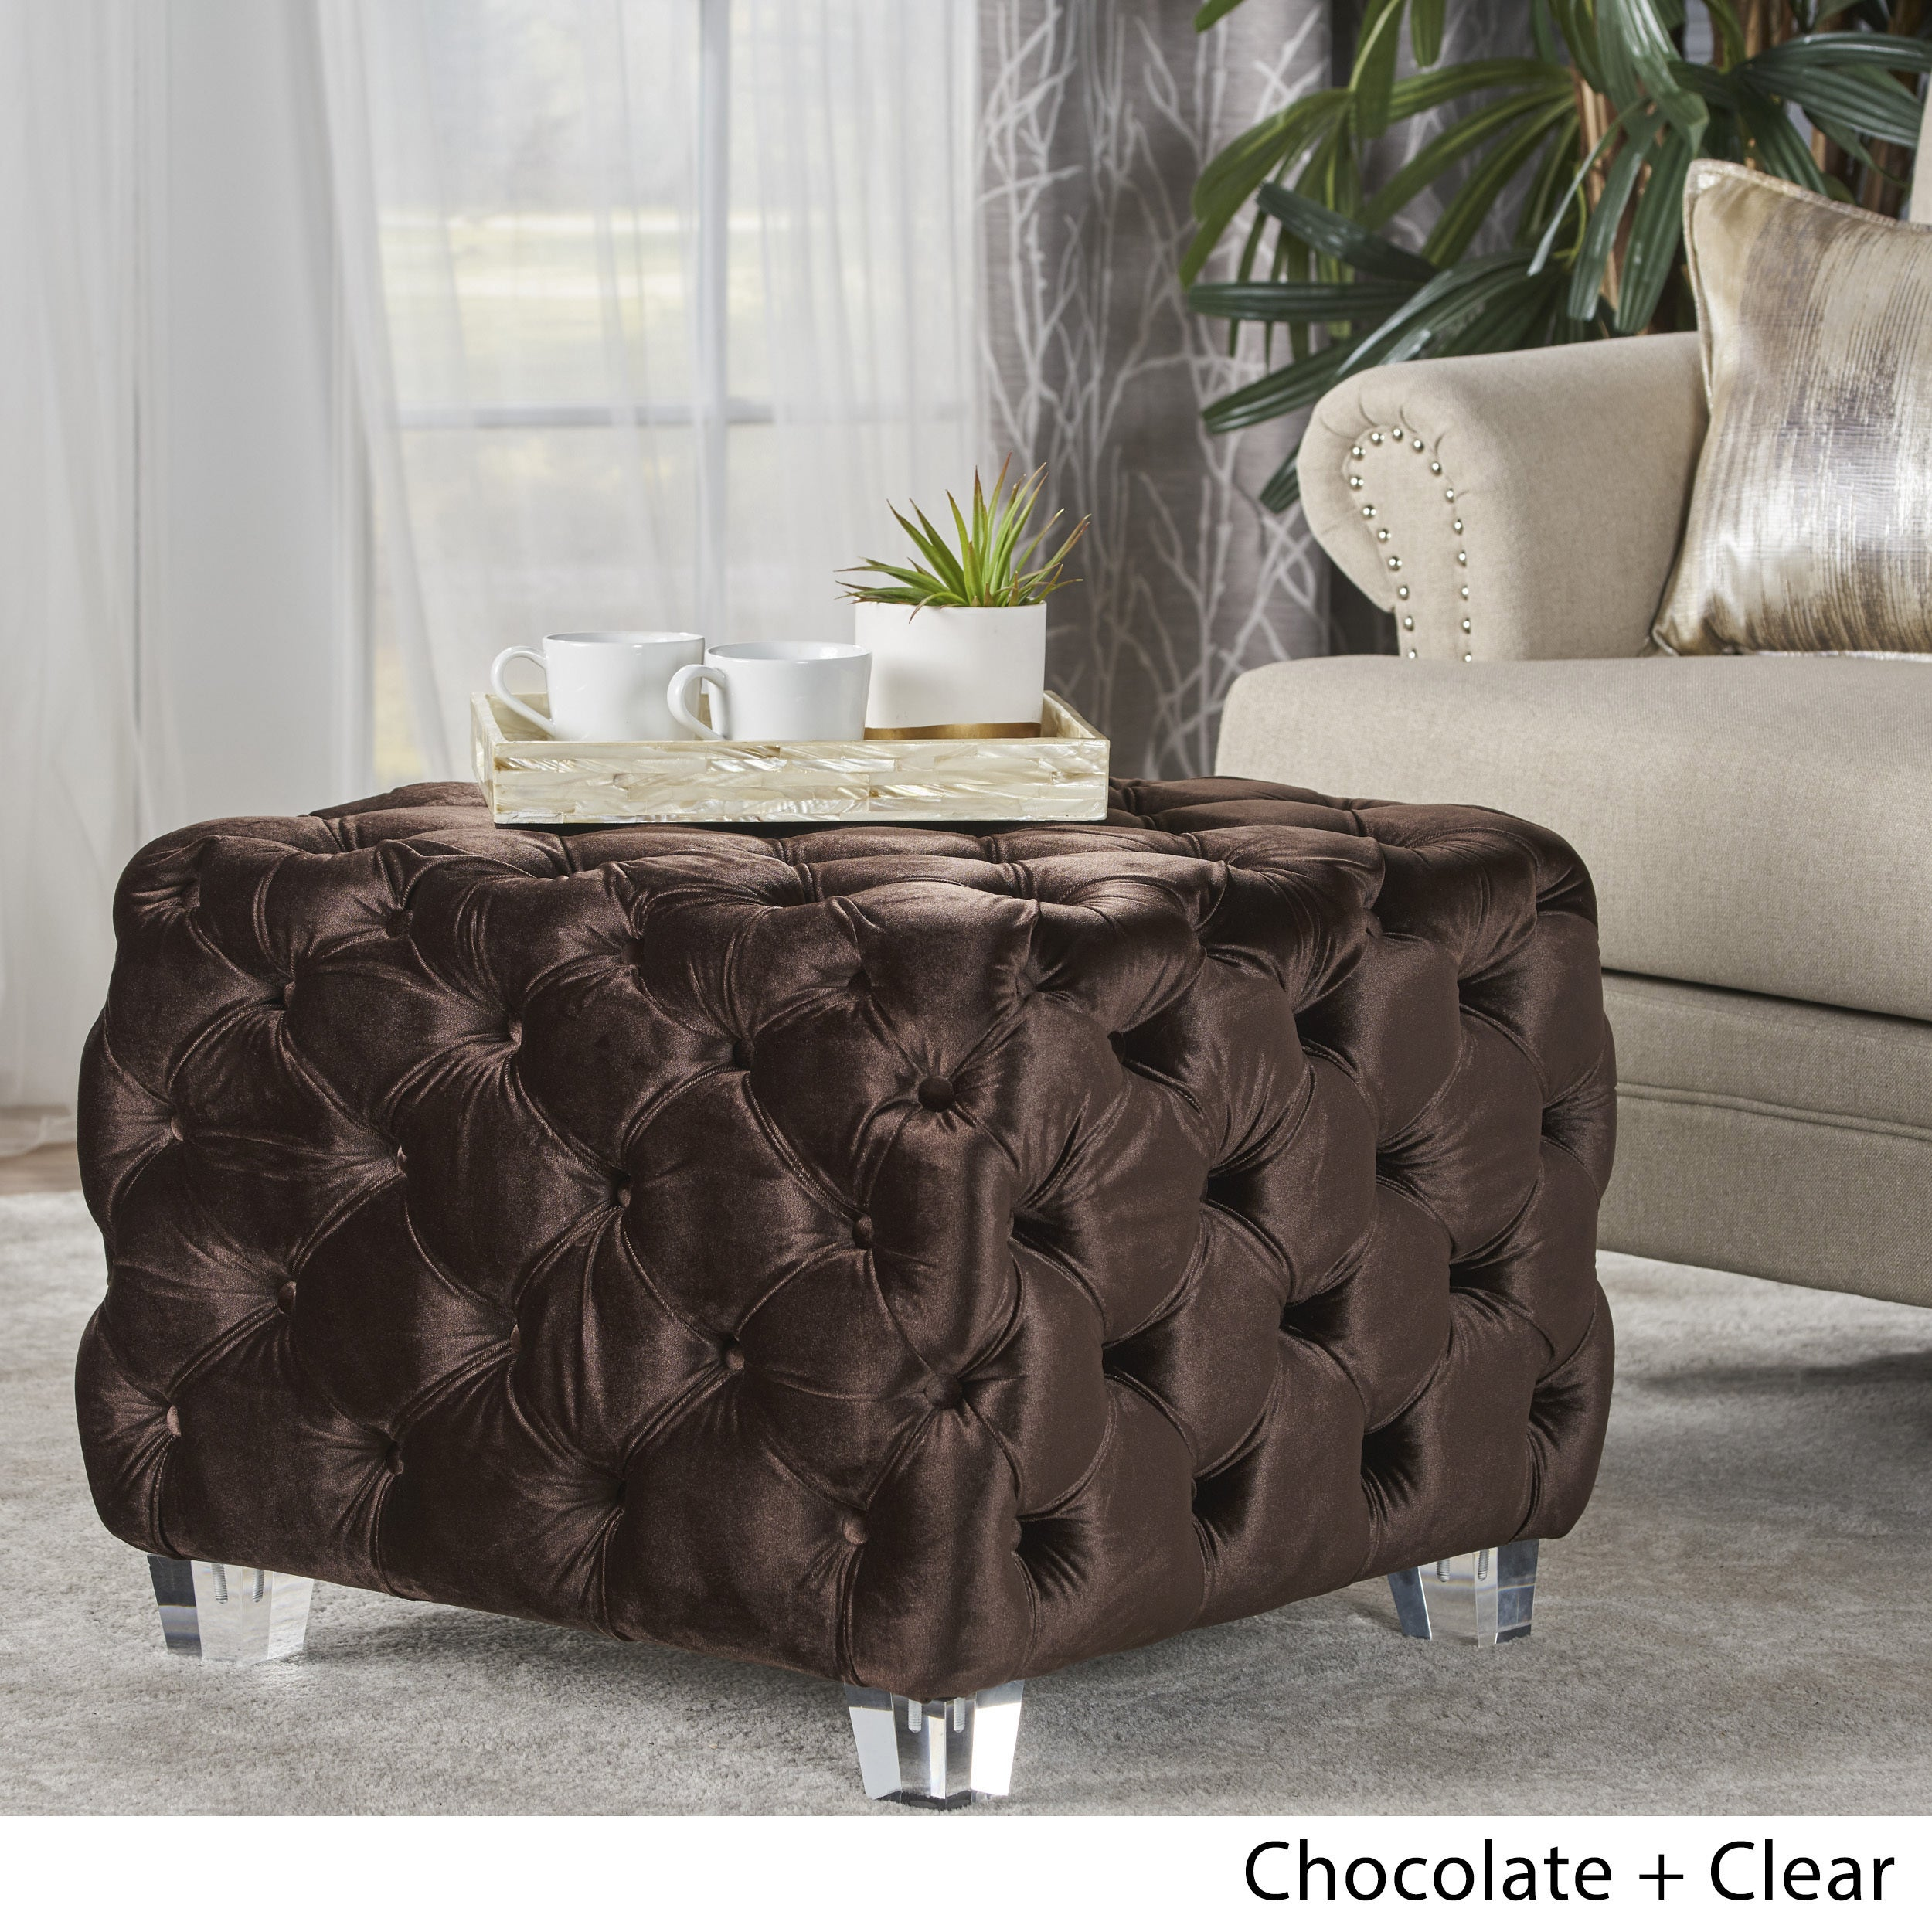 space furniture square extra rectangular tables room coffee round design living ottoman footstool storage tufted with large leather table cock ottomans for